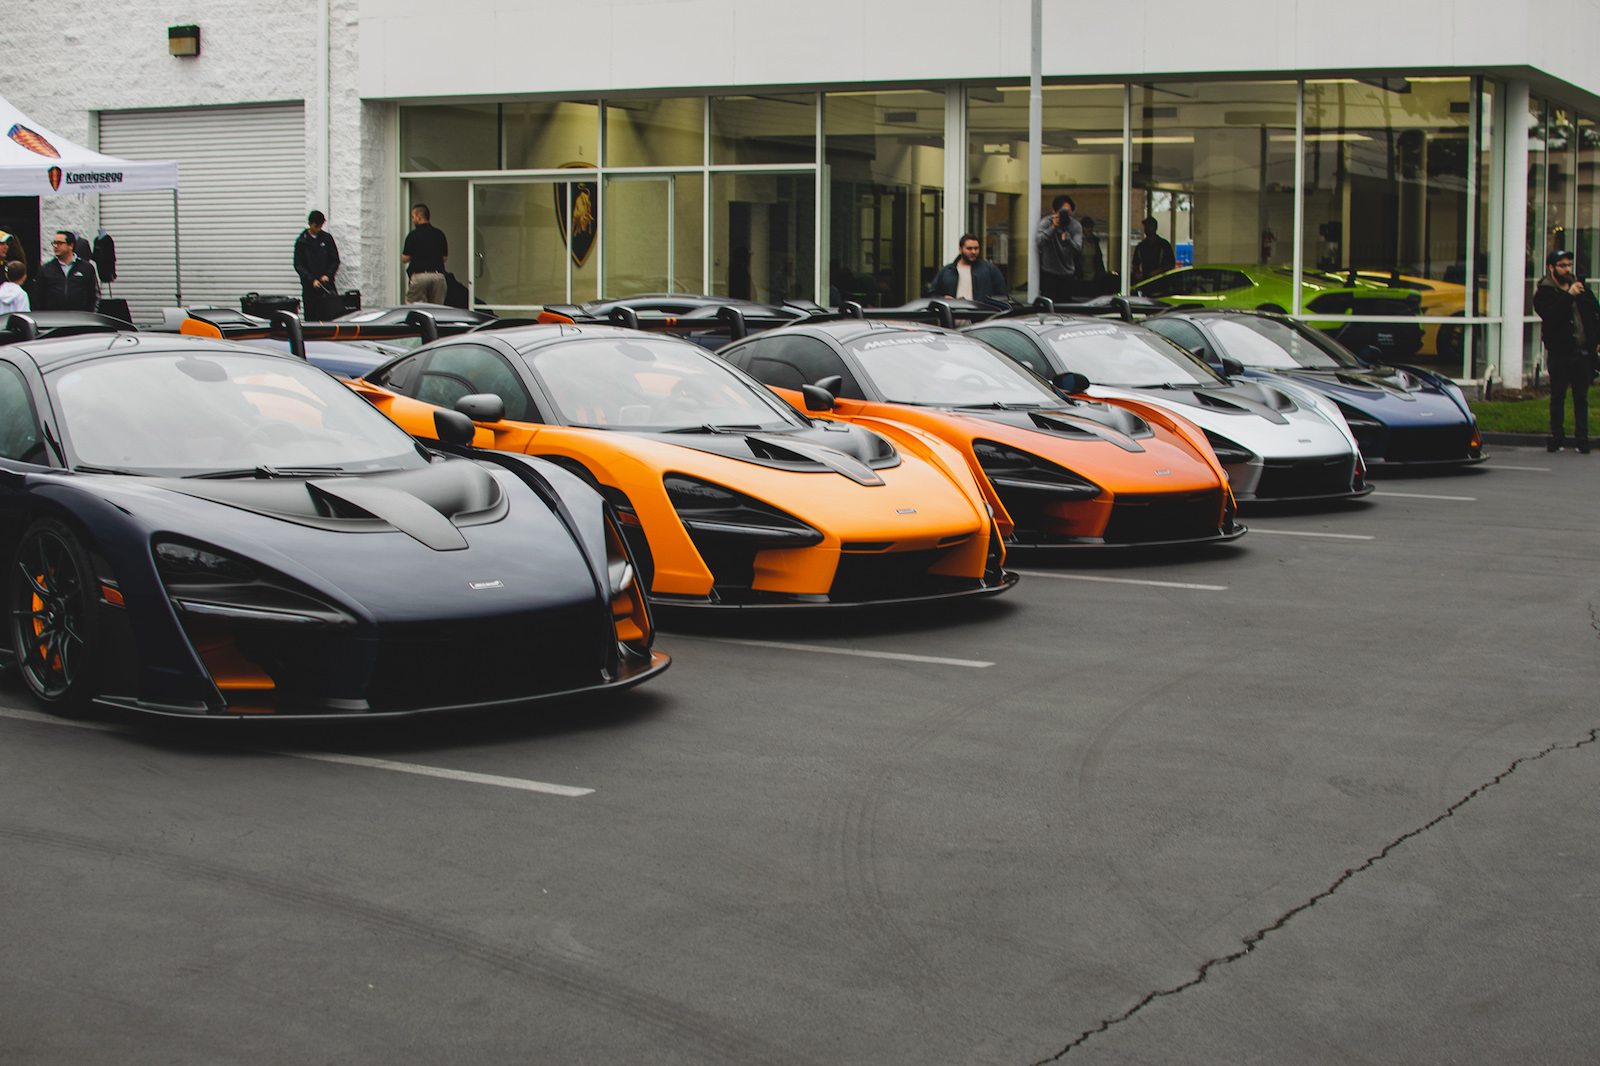 Gallery Seven Mclaren Sennas Take Over Lamborghini Newport Beach